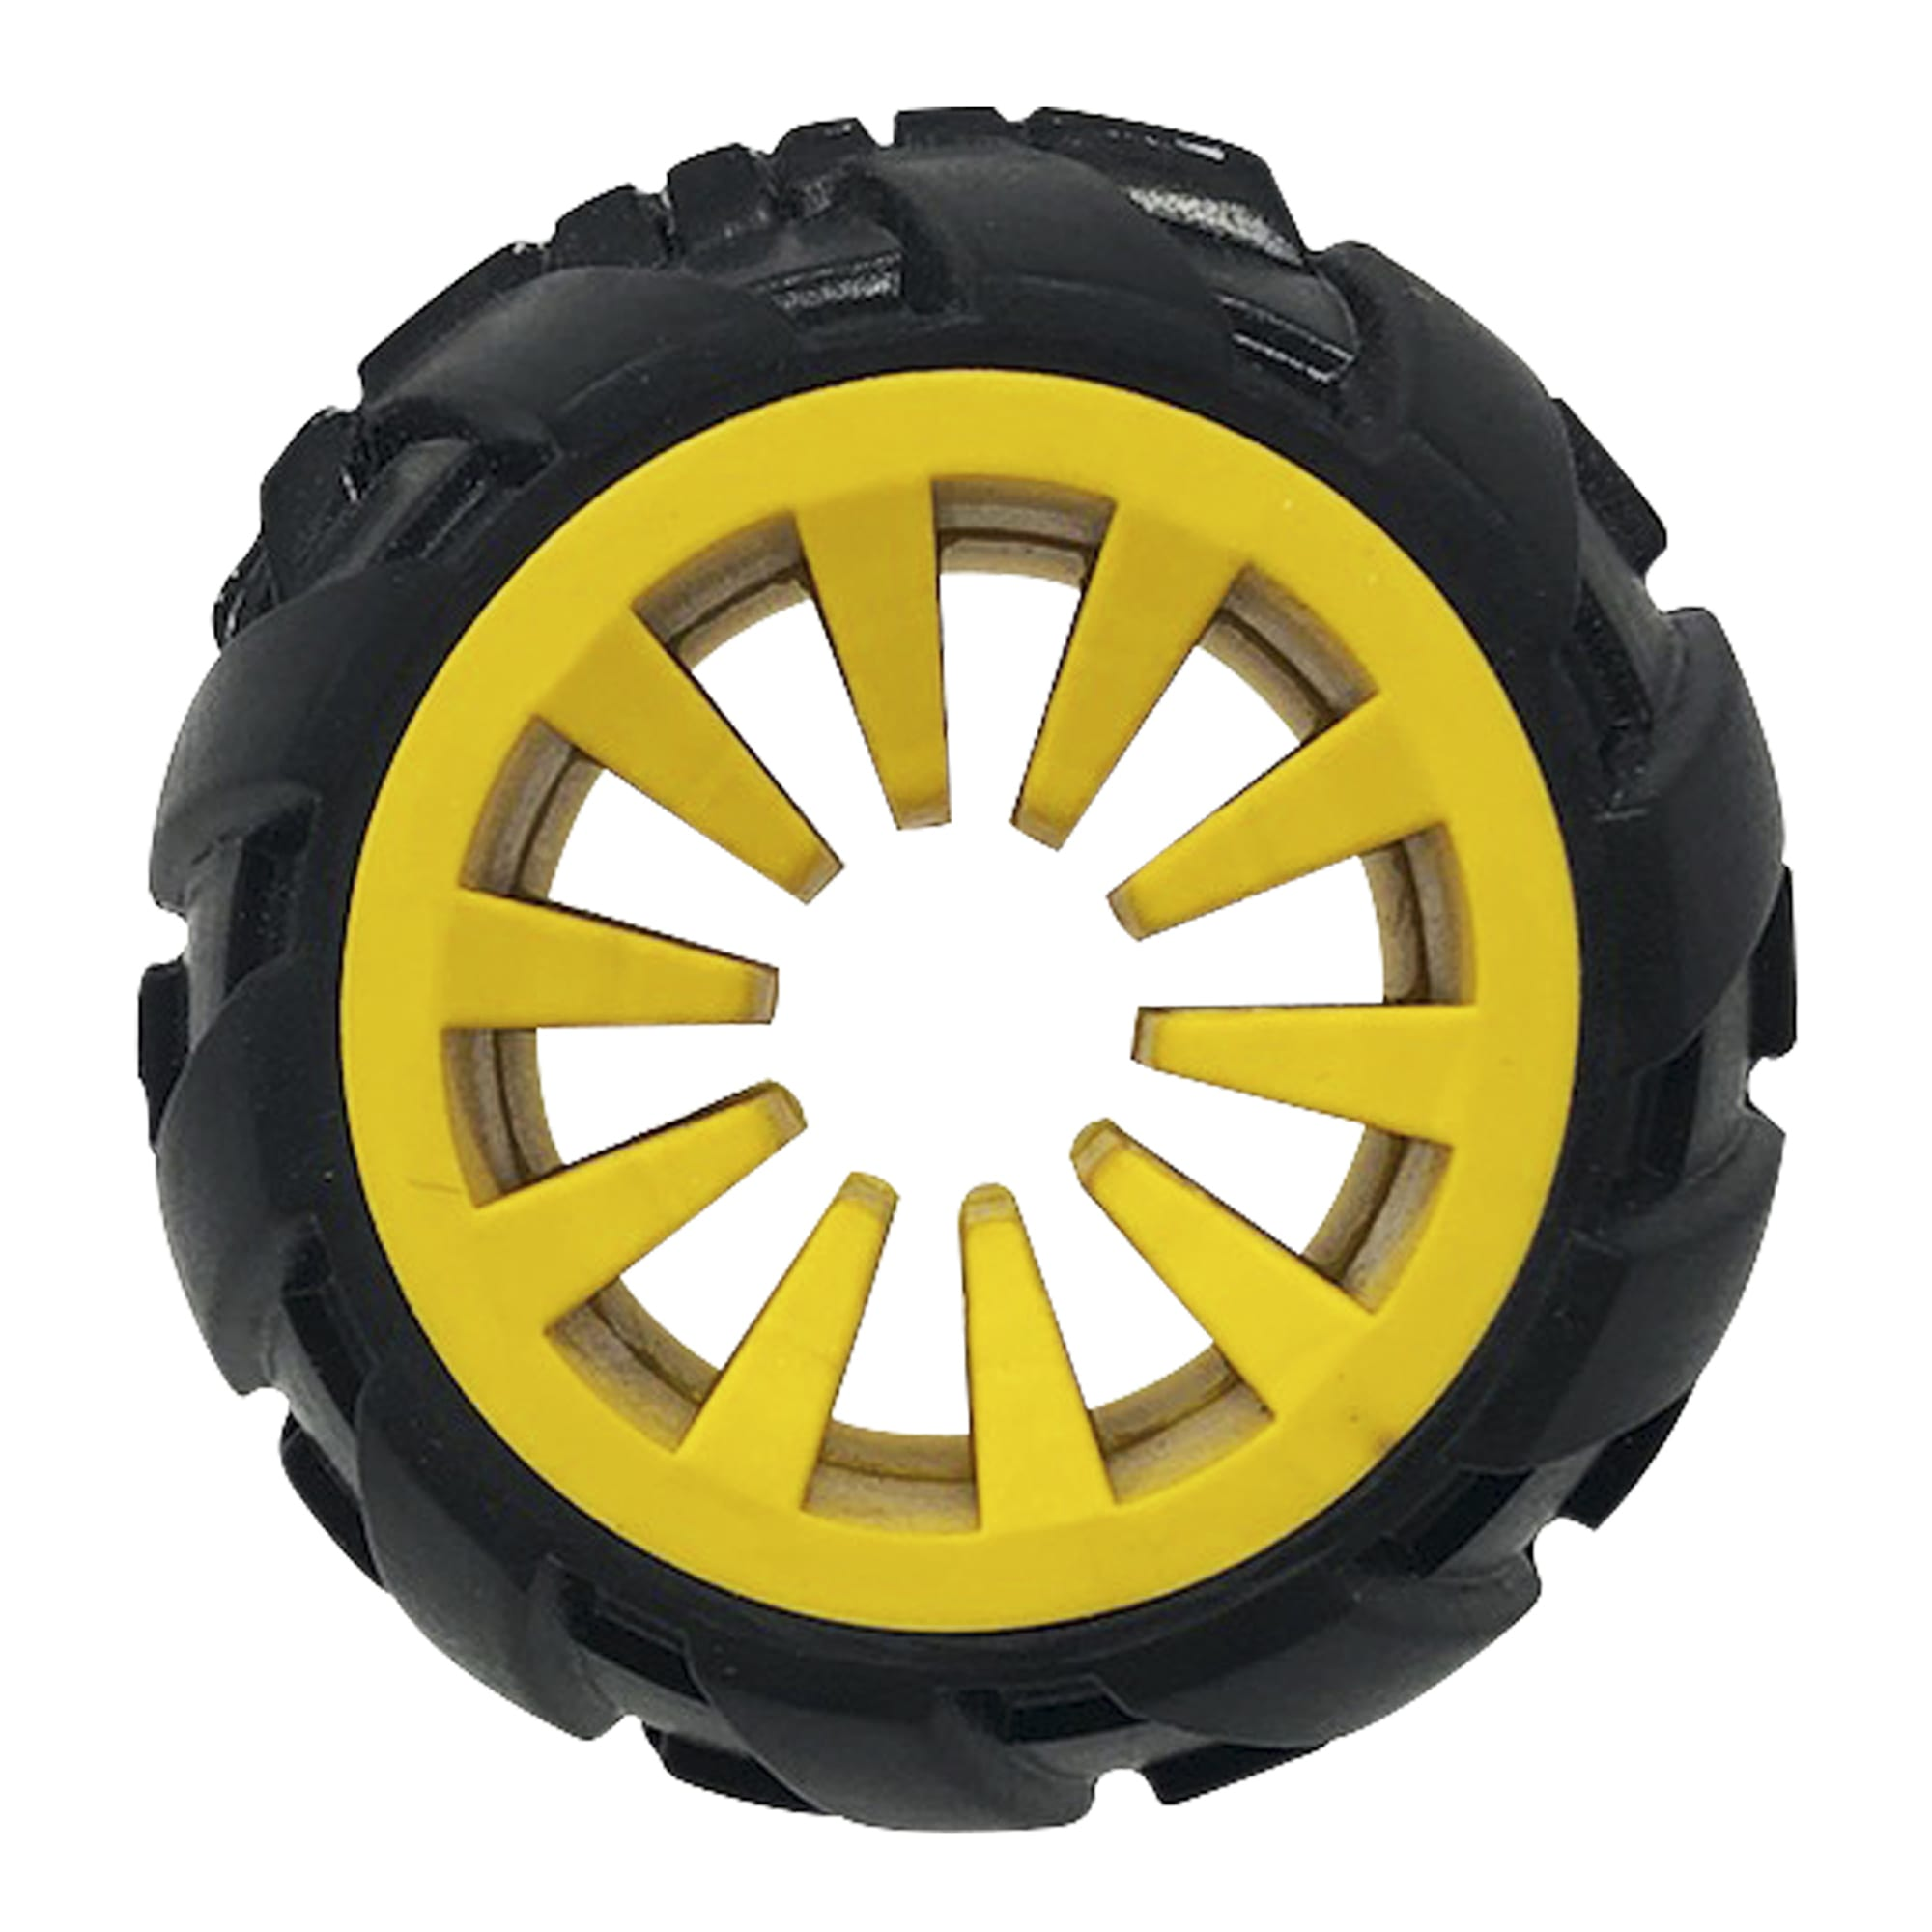 Tonka Mega Tread Treat Holder for Dogs, Small, Yellow / Black